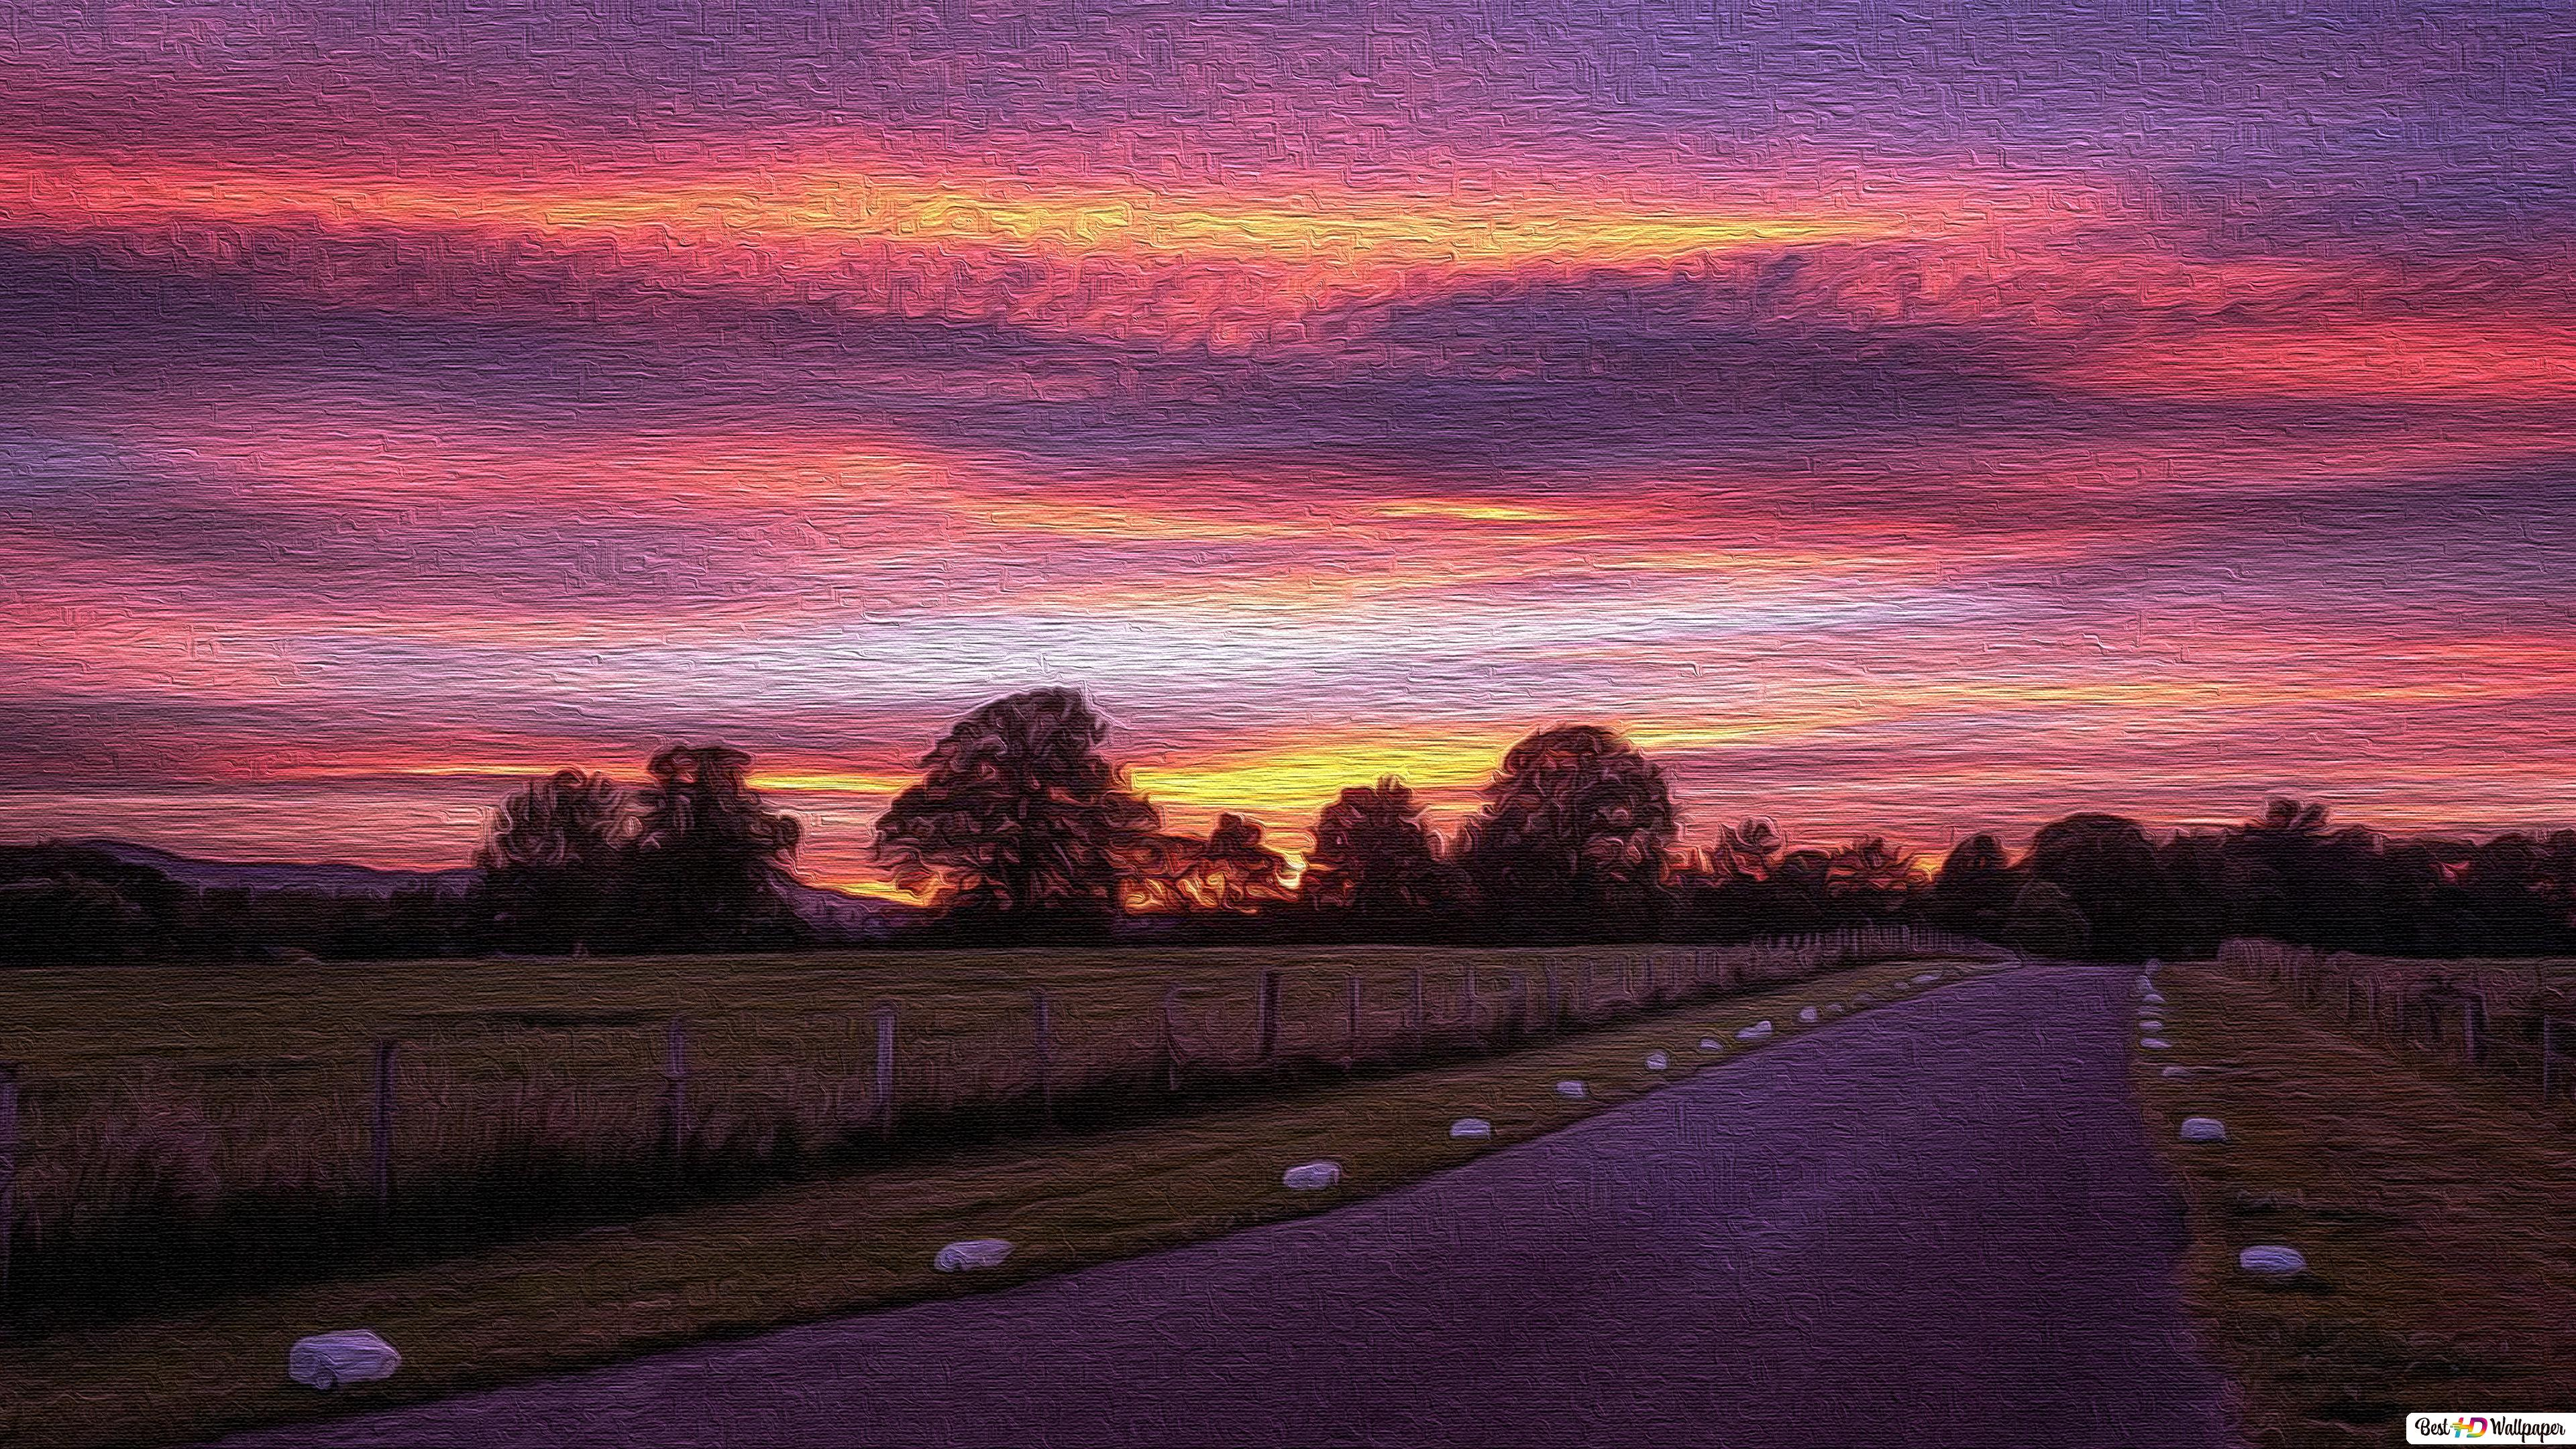 Country road sunset HD wallpaper download